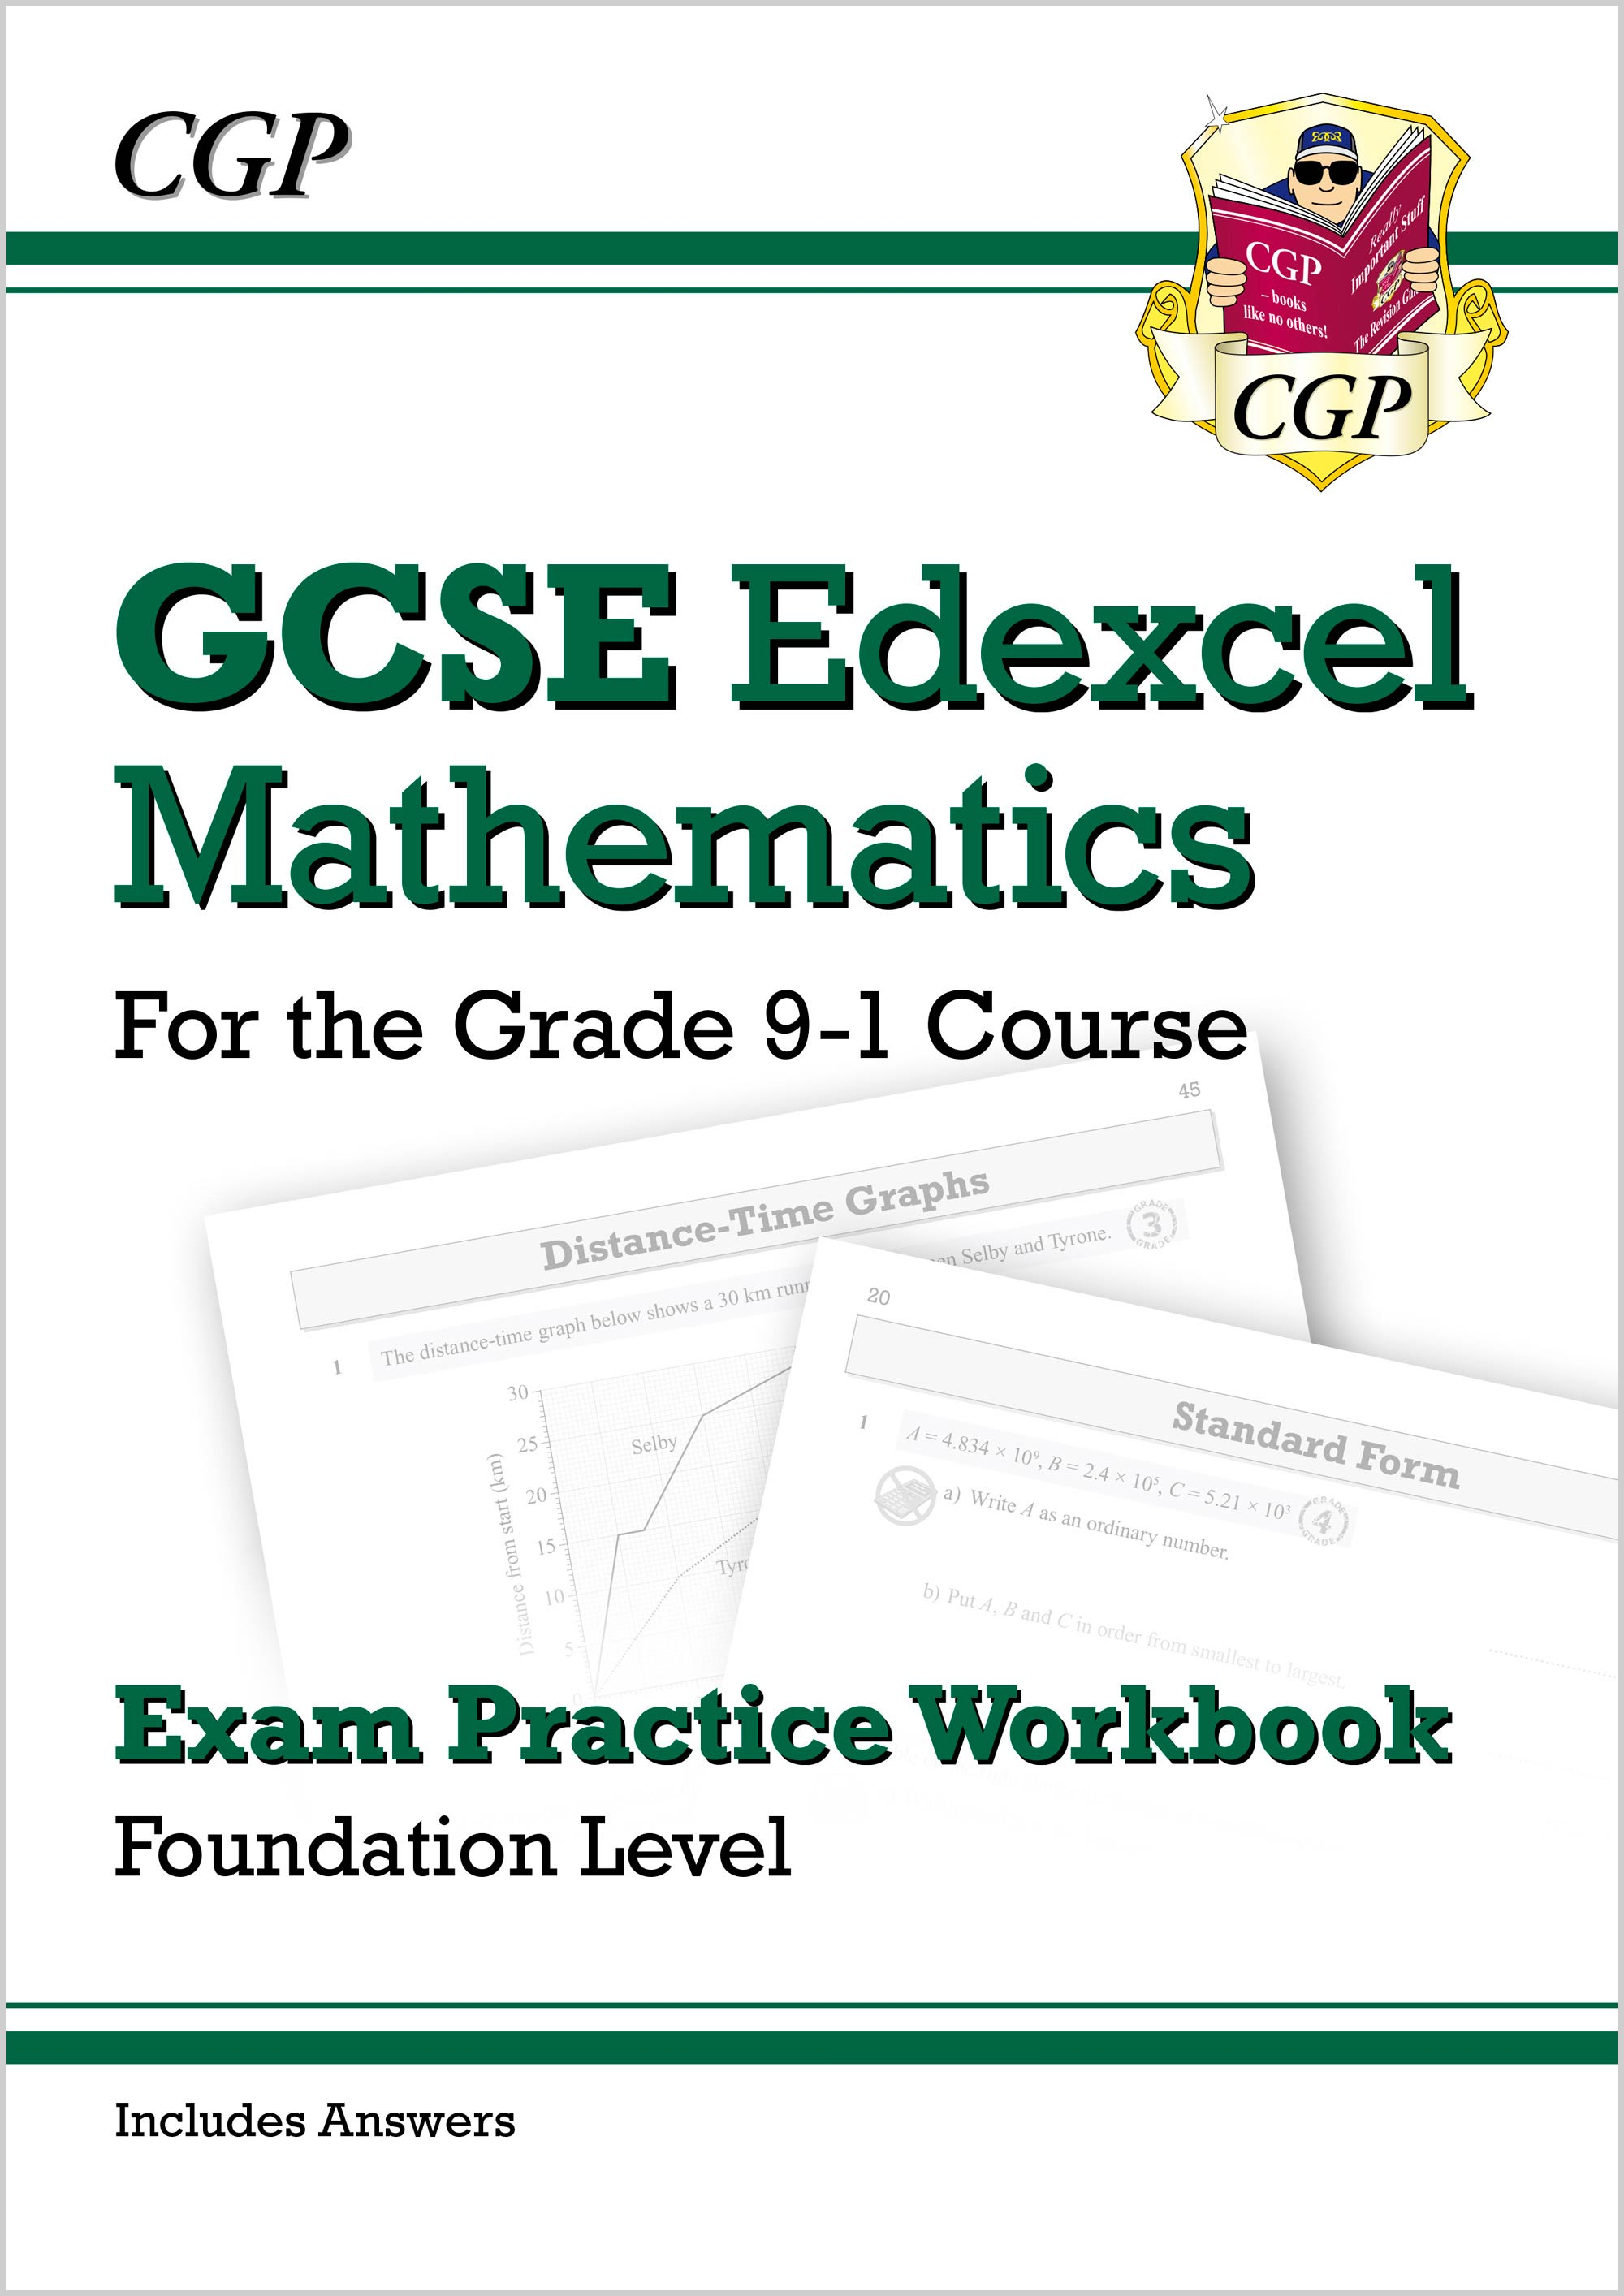 MXFQ42DK - GCSE Maths Edexcel Exam Practice Workbook: Foundation - for the Grade 9-1 Course (with An